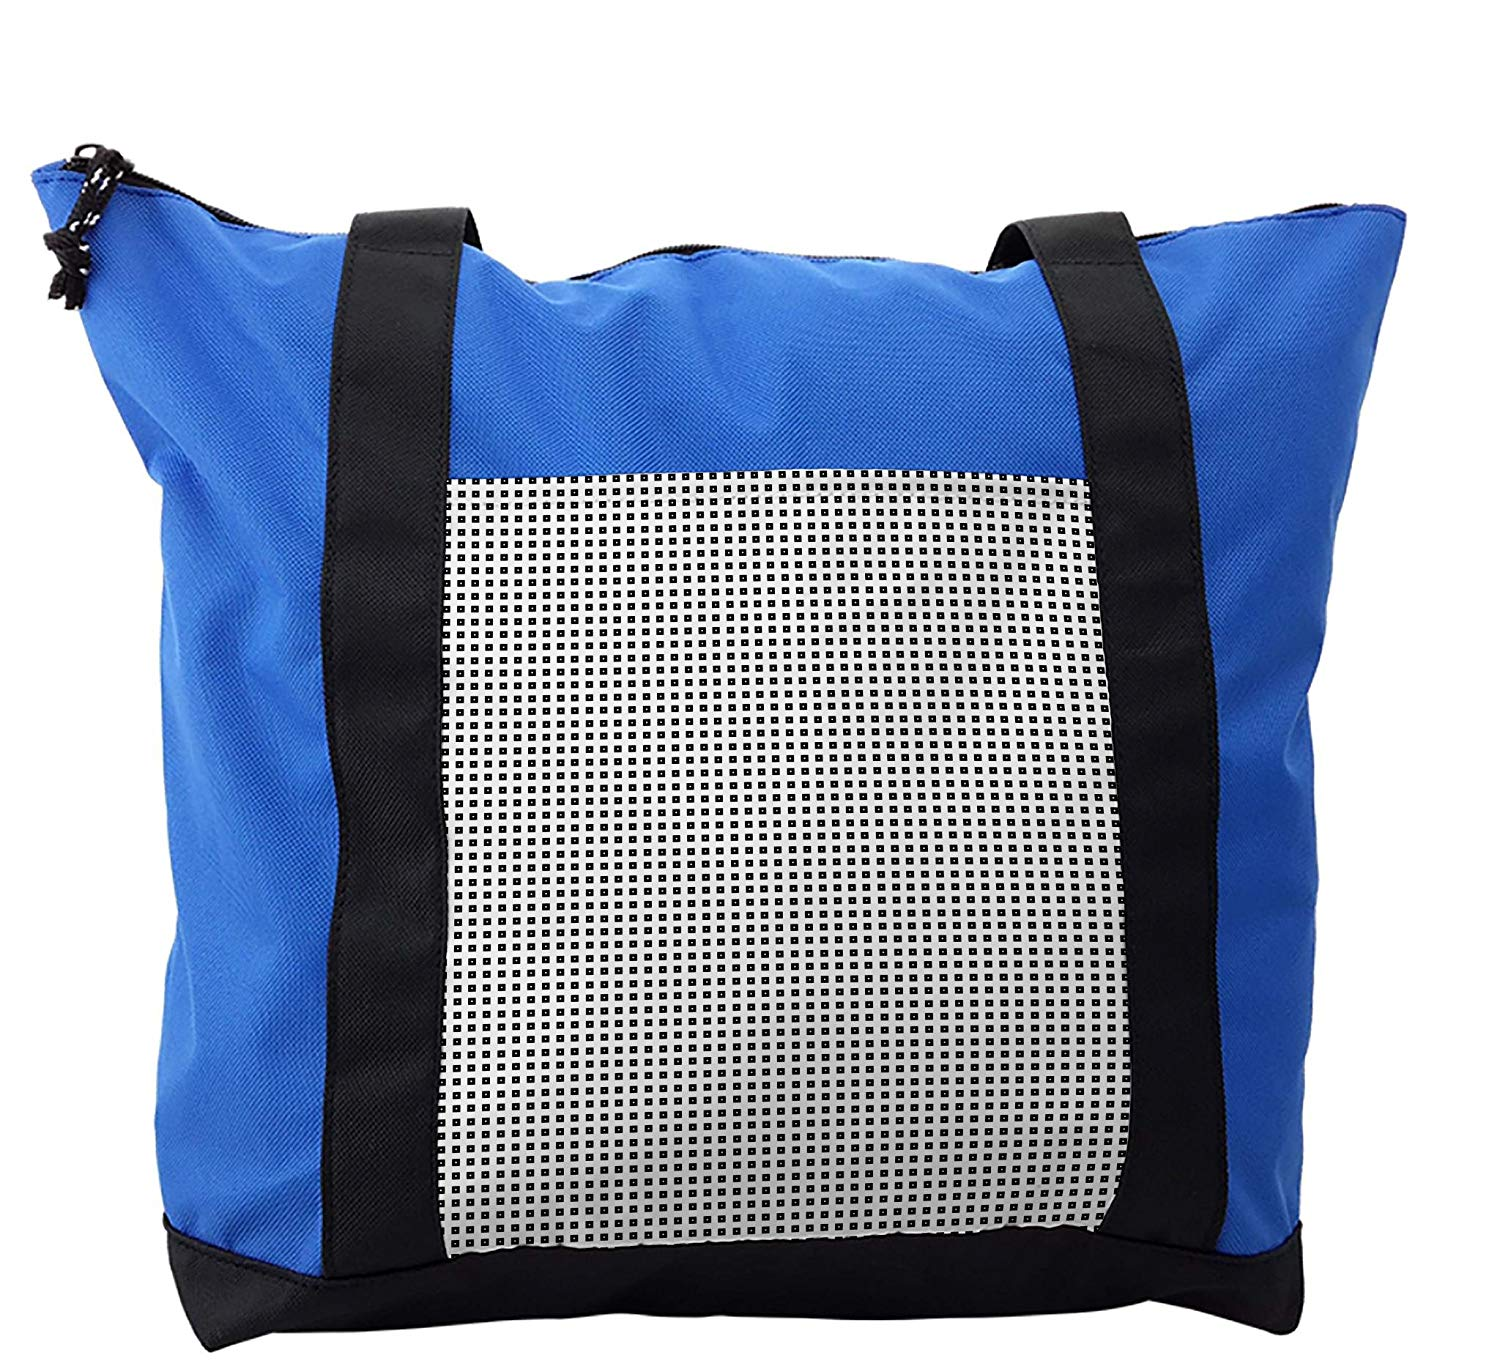 Lunarable Checkered Shoulder Bag, Little Square Frames Dots, Durable with Zipper